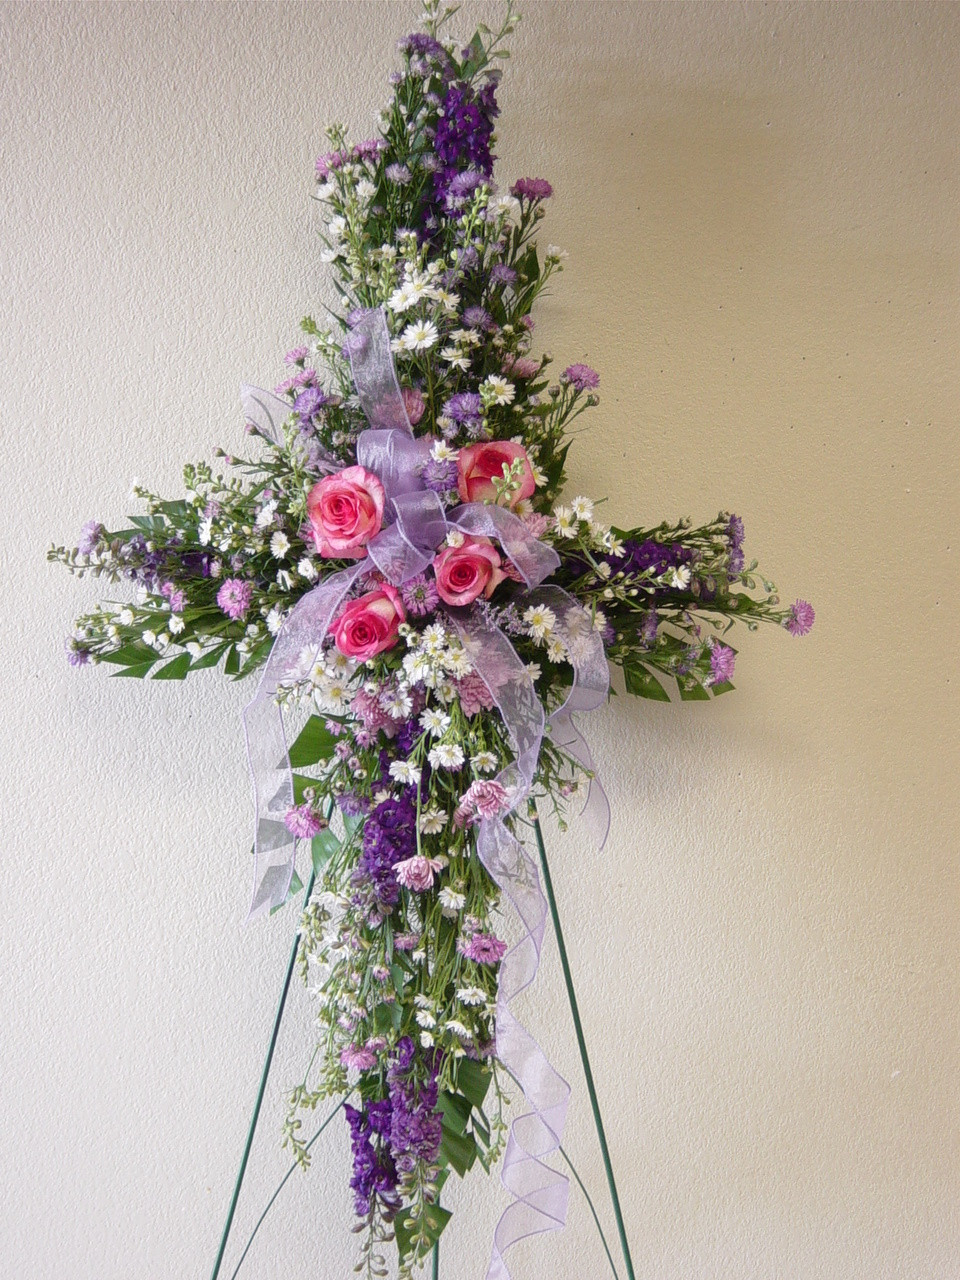 Enchanted deer park florist serving all funeral homes in deer park tx lavender and pink sympathy cross by enchanted florist pasadena tx funeral cross of flowers in izmirmasajfo Image collections